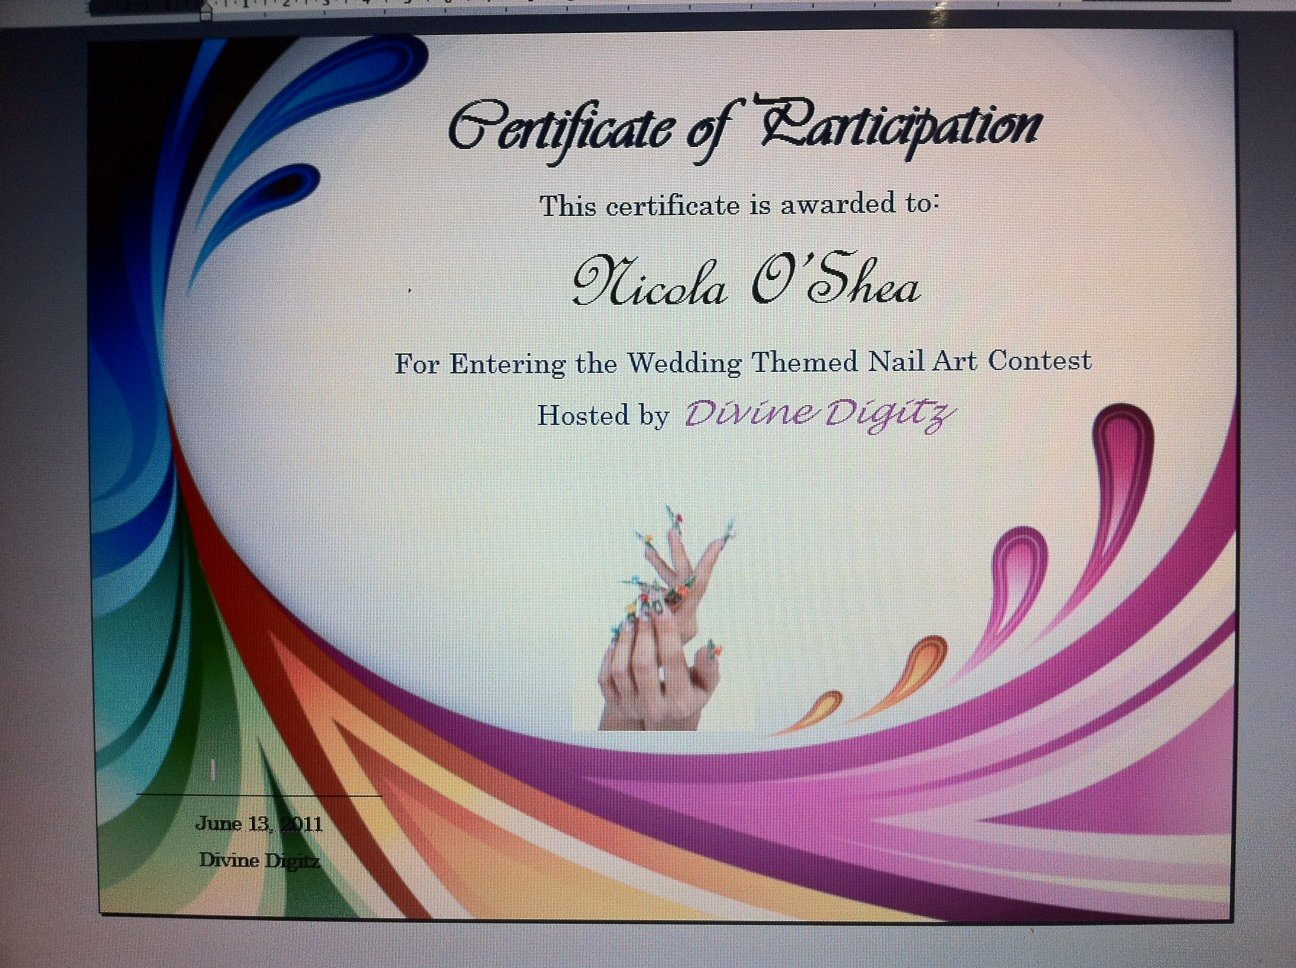 Talent Show Participation Certificate Lovely Divine Digitz some Classic Nail Art Designs & Certificate